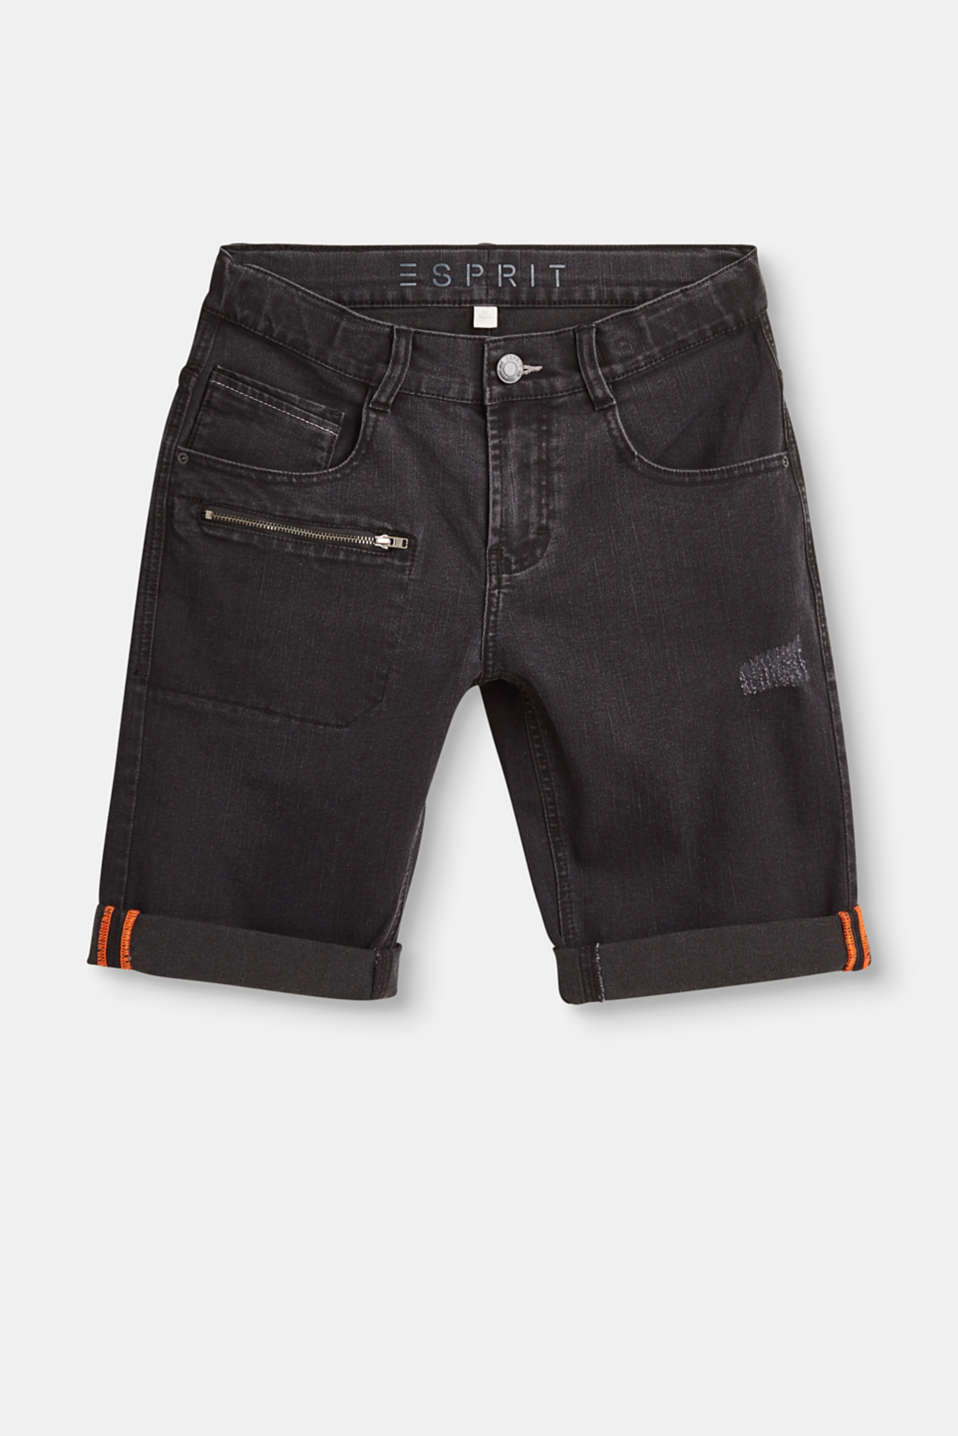 Esprit - Denim shorts with distressed effects